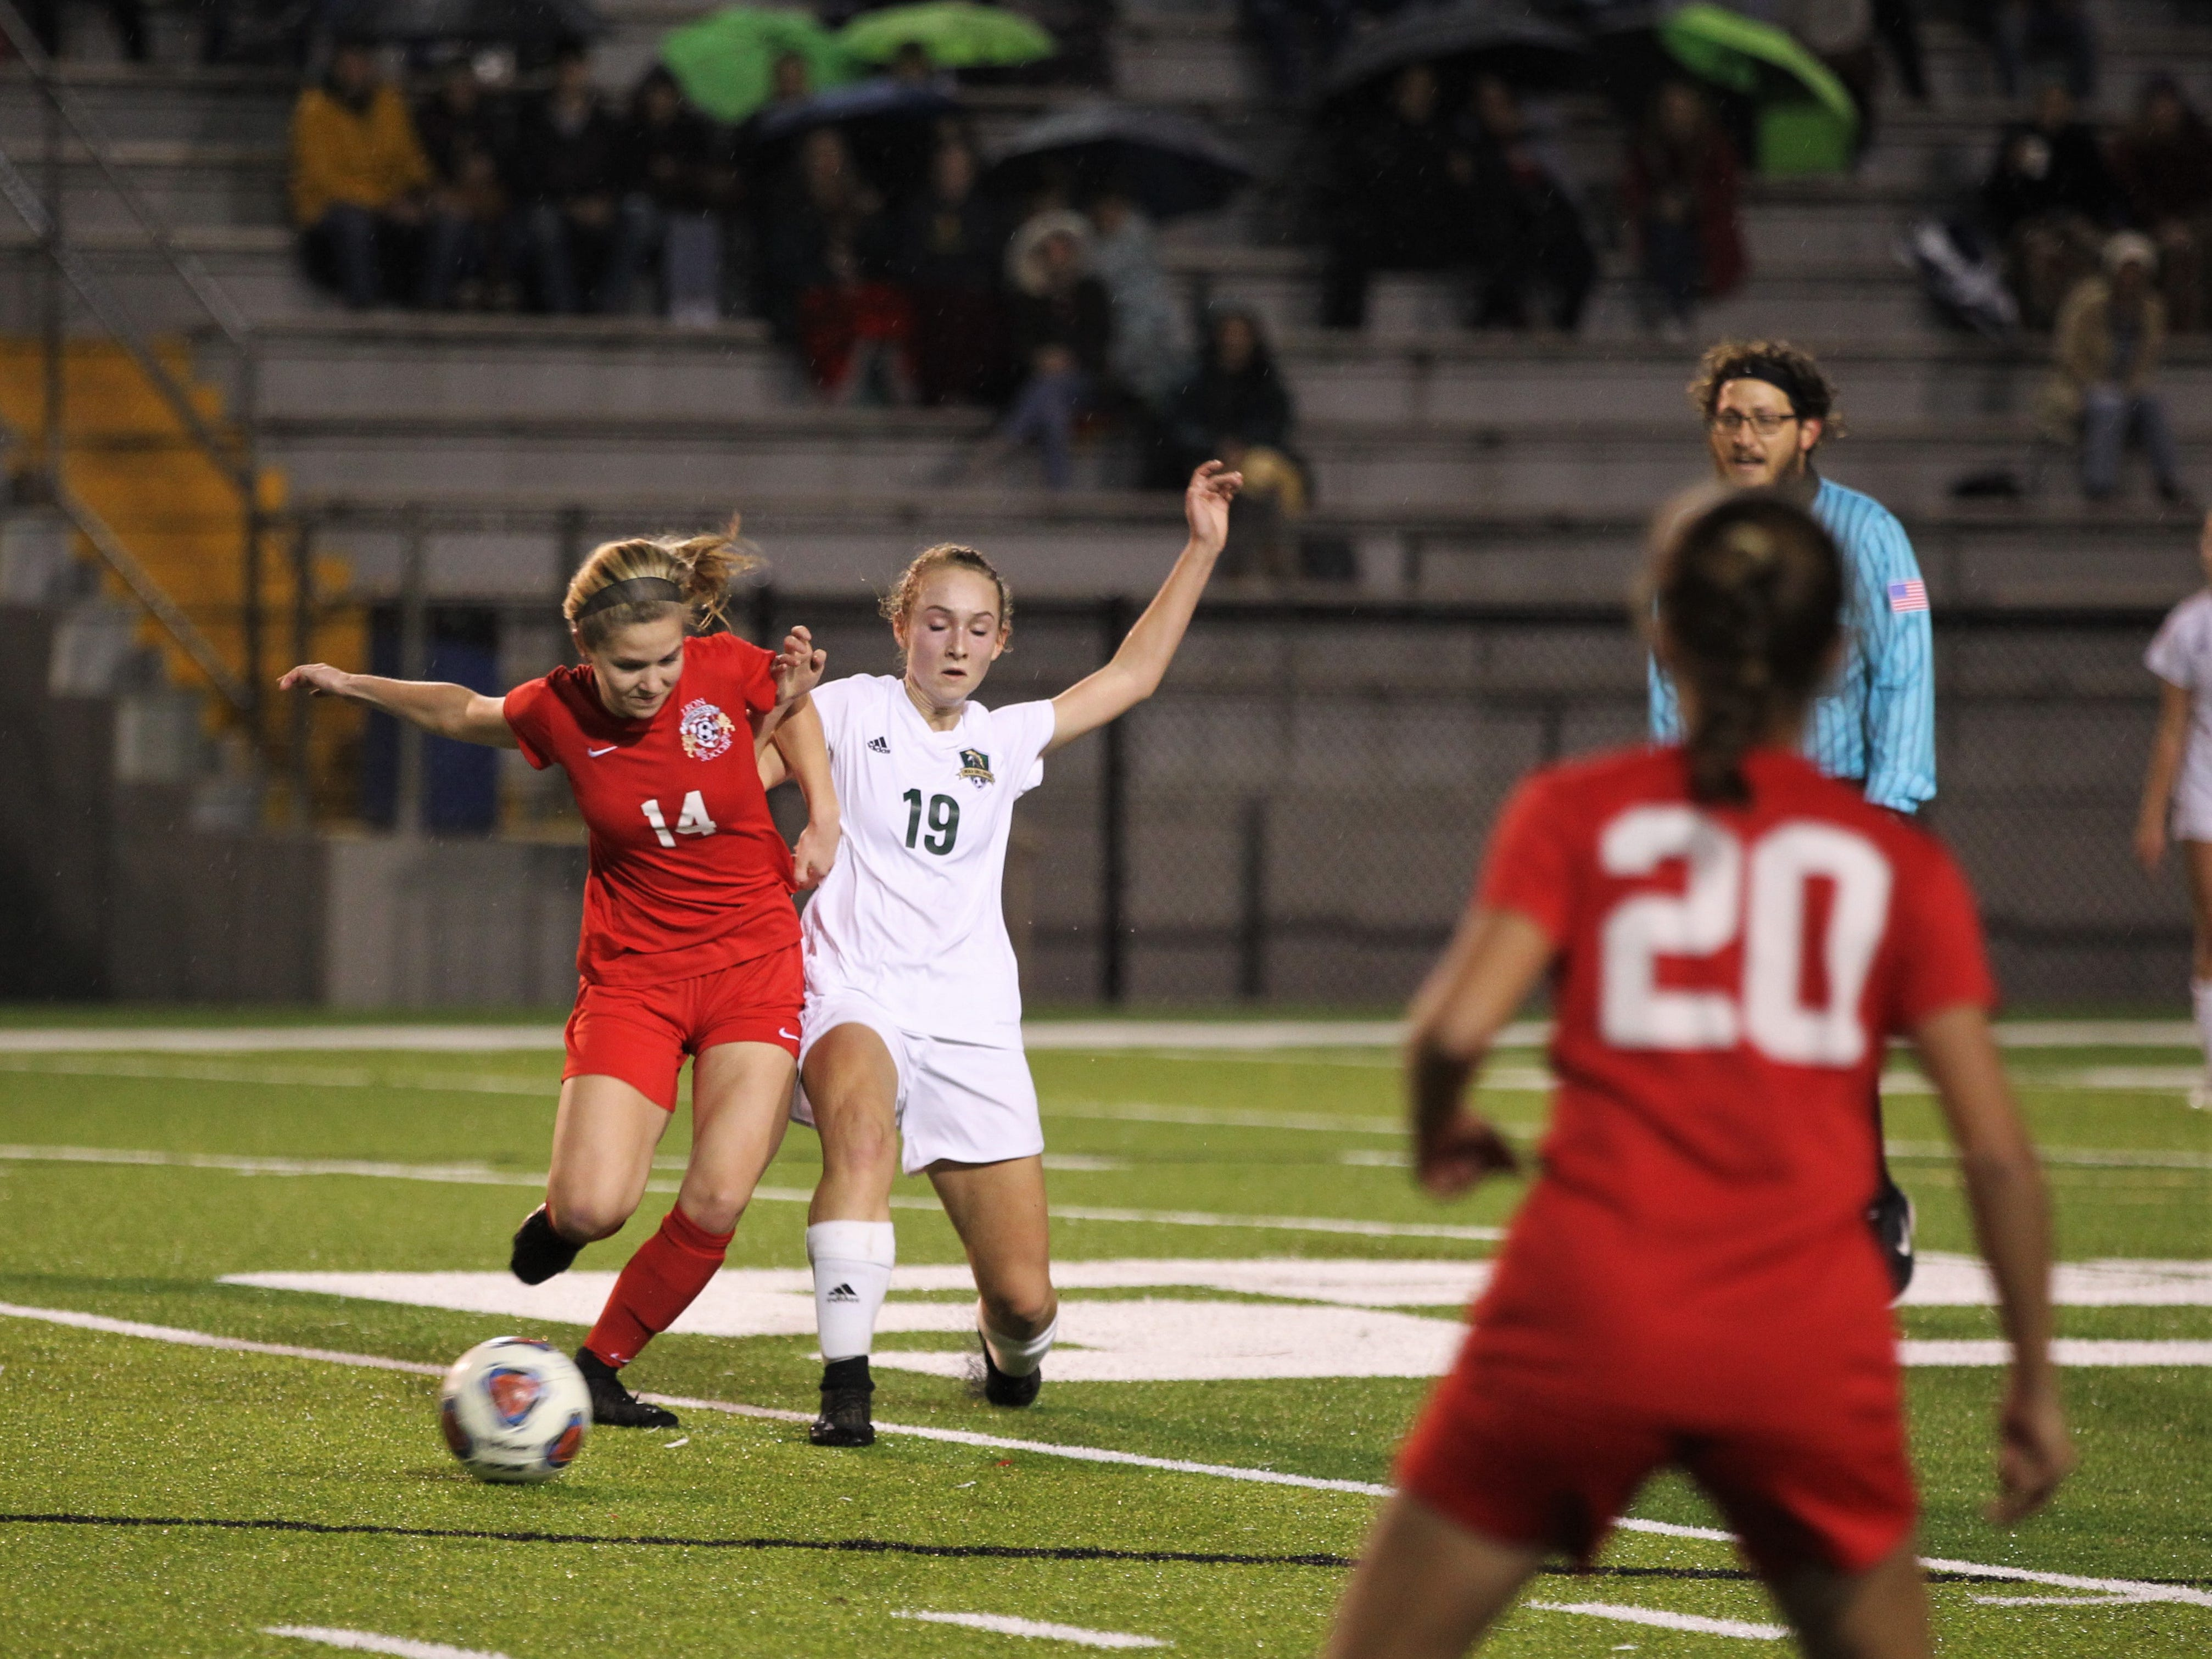 Leon's Emma McGibany and Lincoln's Lexi Gray battle for possession as Leon's girls soccer team beat Lincoln in the District 2-4A championship on Feb. 1, 2019.